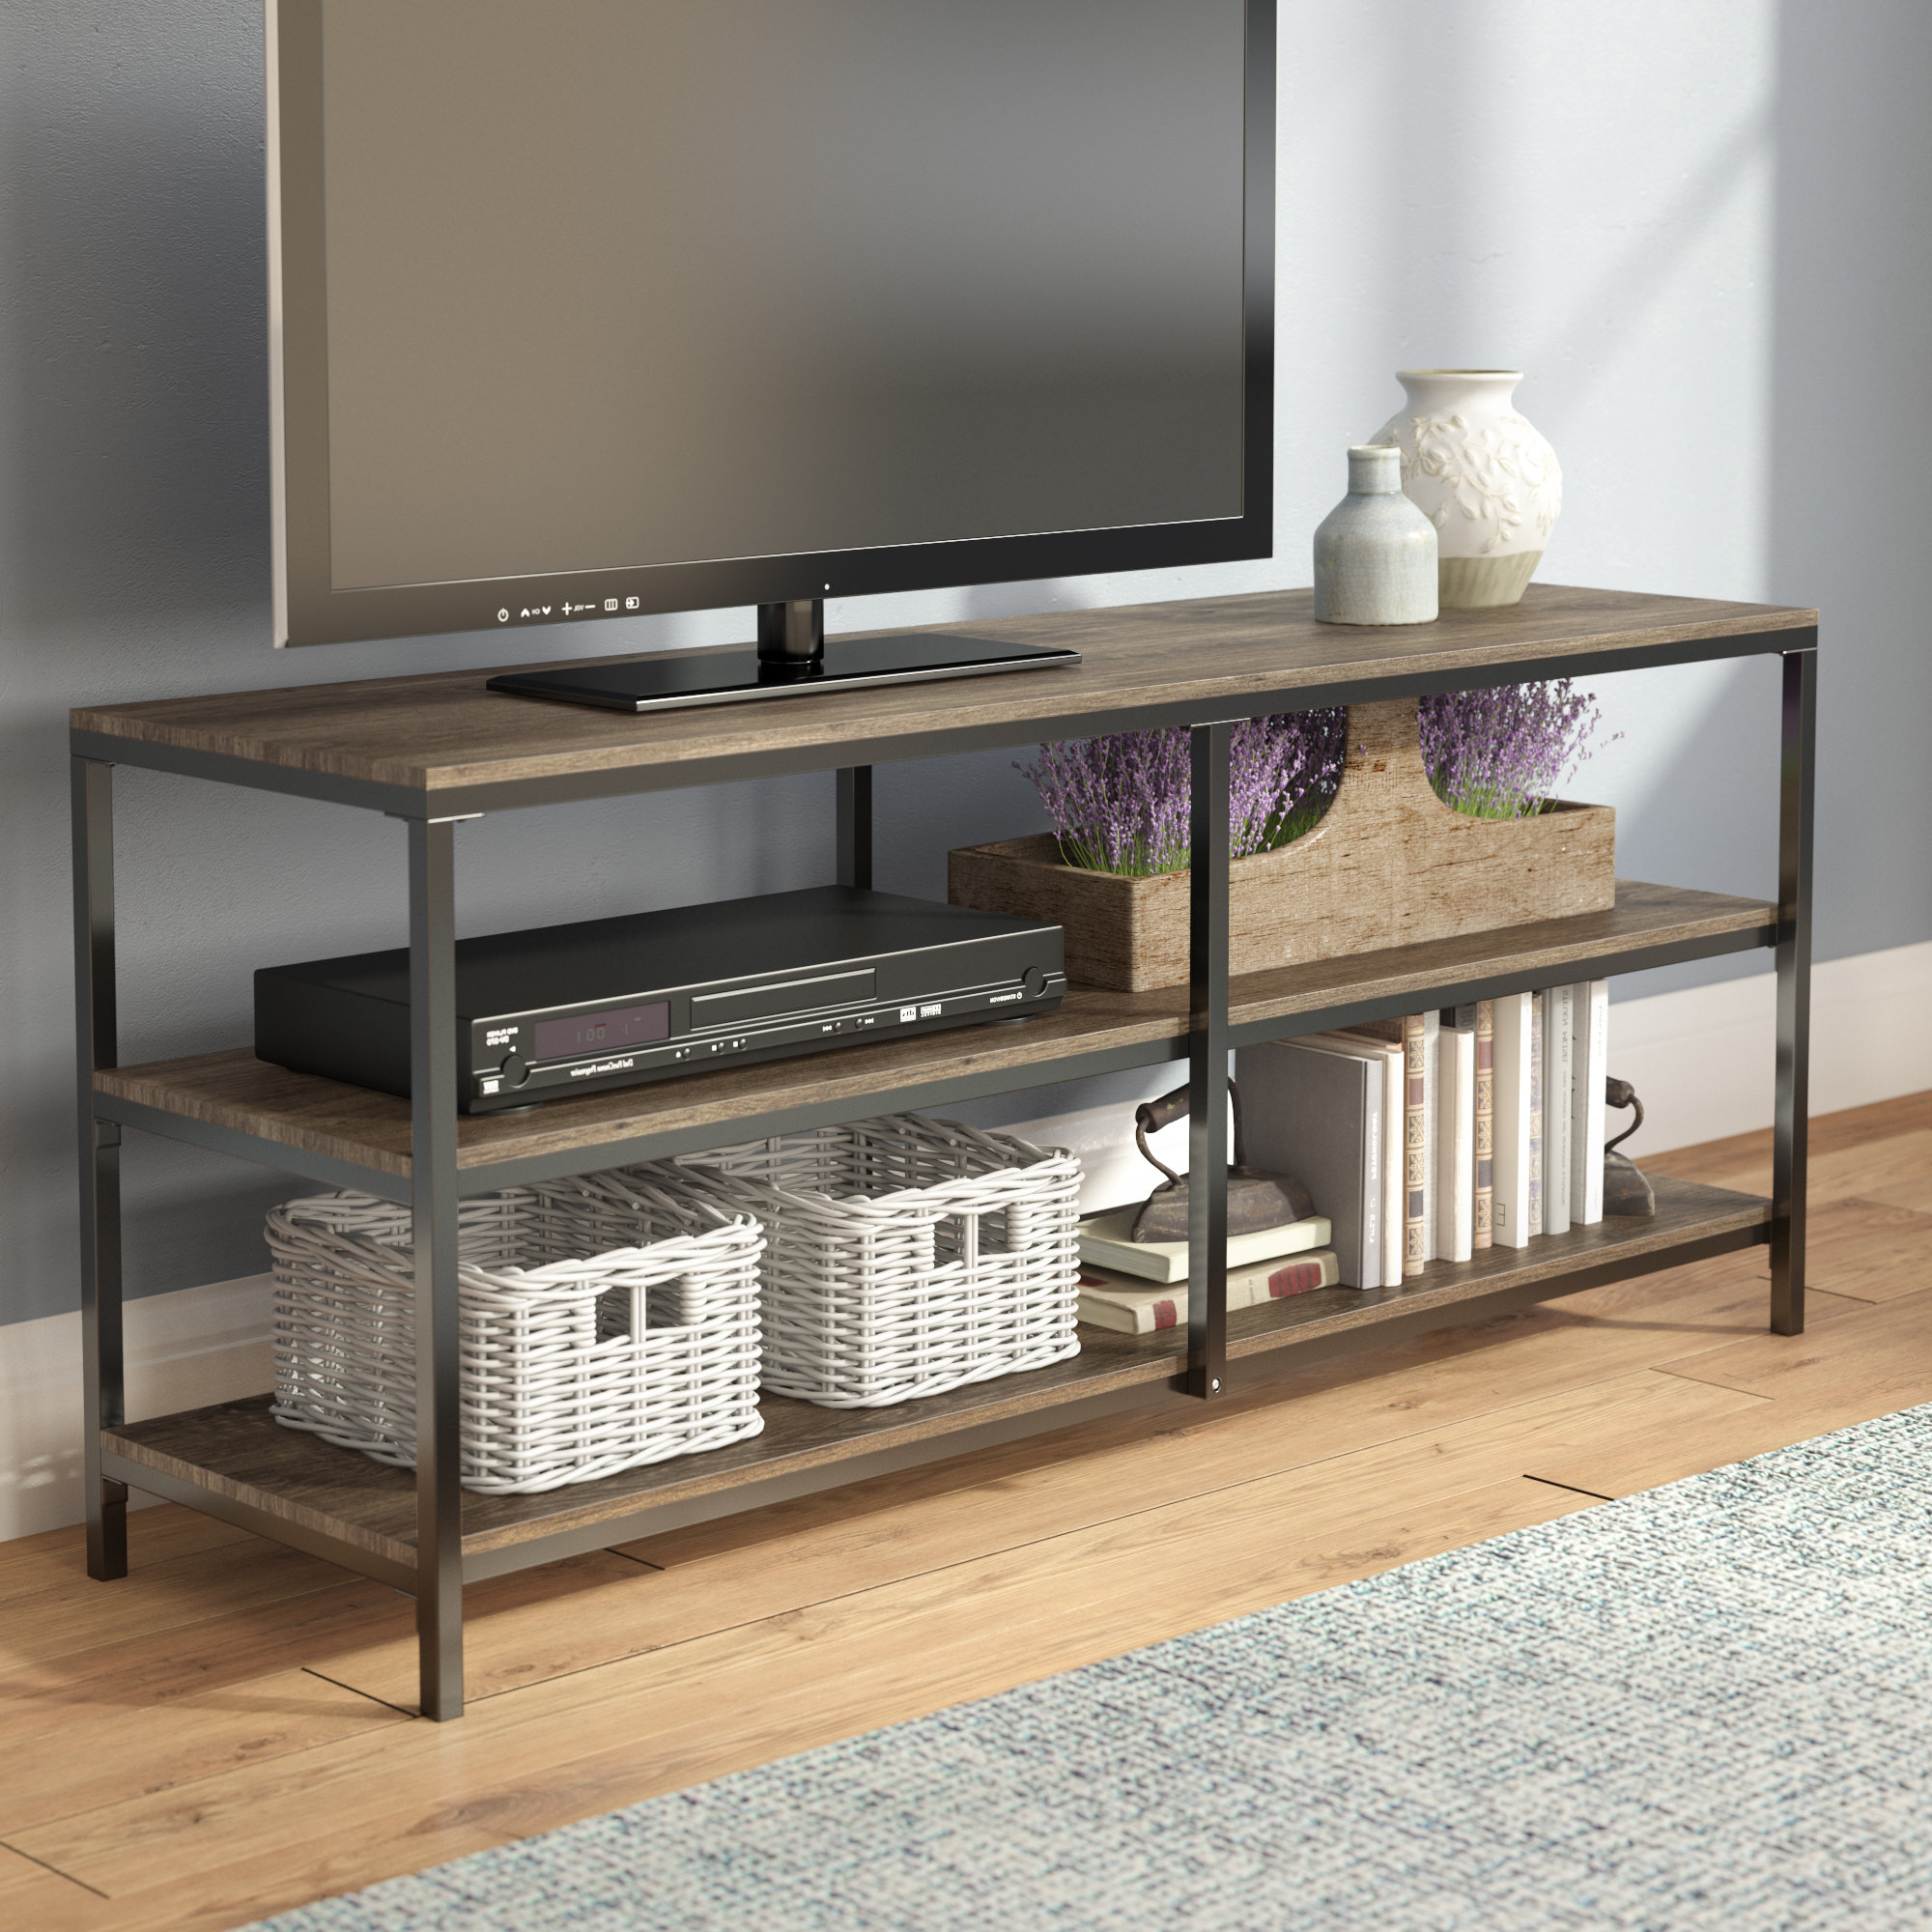 Popular Laurel Foundry Modern Farmhouse Forteau Tv Stand For Tvs Up To 60 With Comet Tv Stands (View 4 of 20)